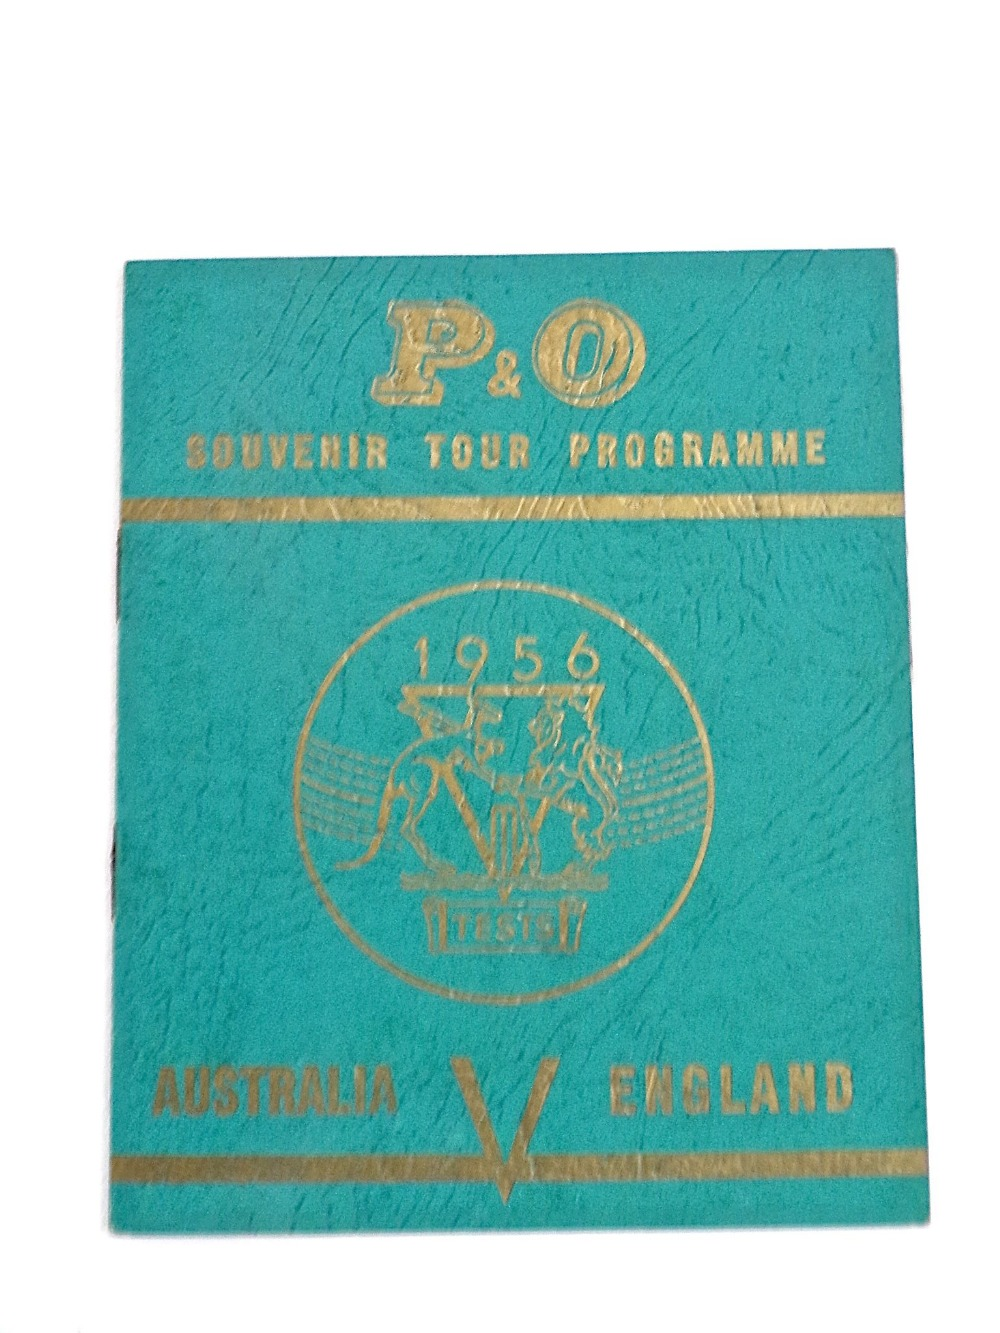 Lot 874 - A signed souvenir tour programme of Australia v England 1956 Test Series Cricket (displayed in